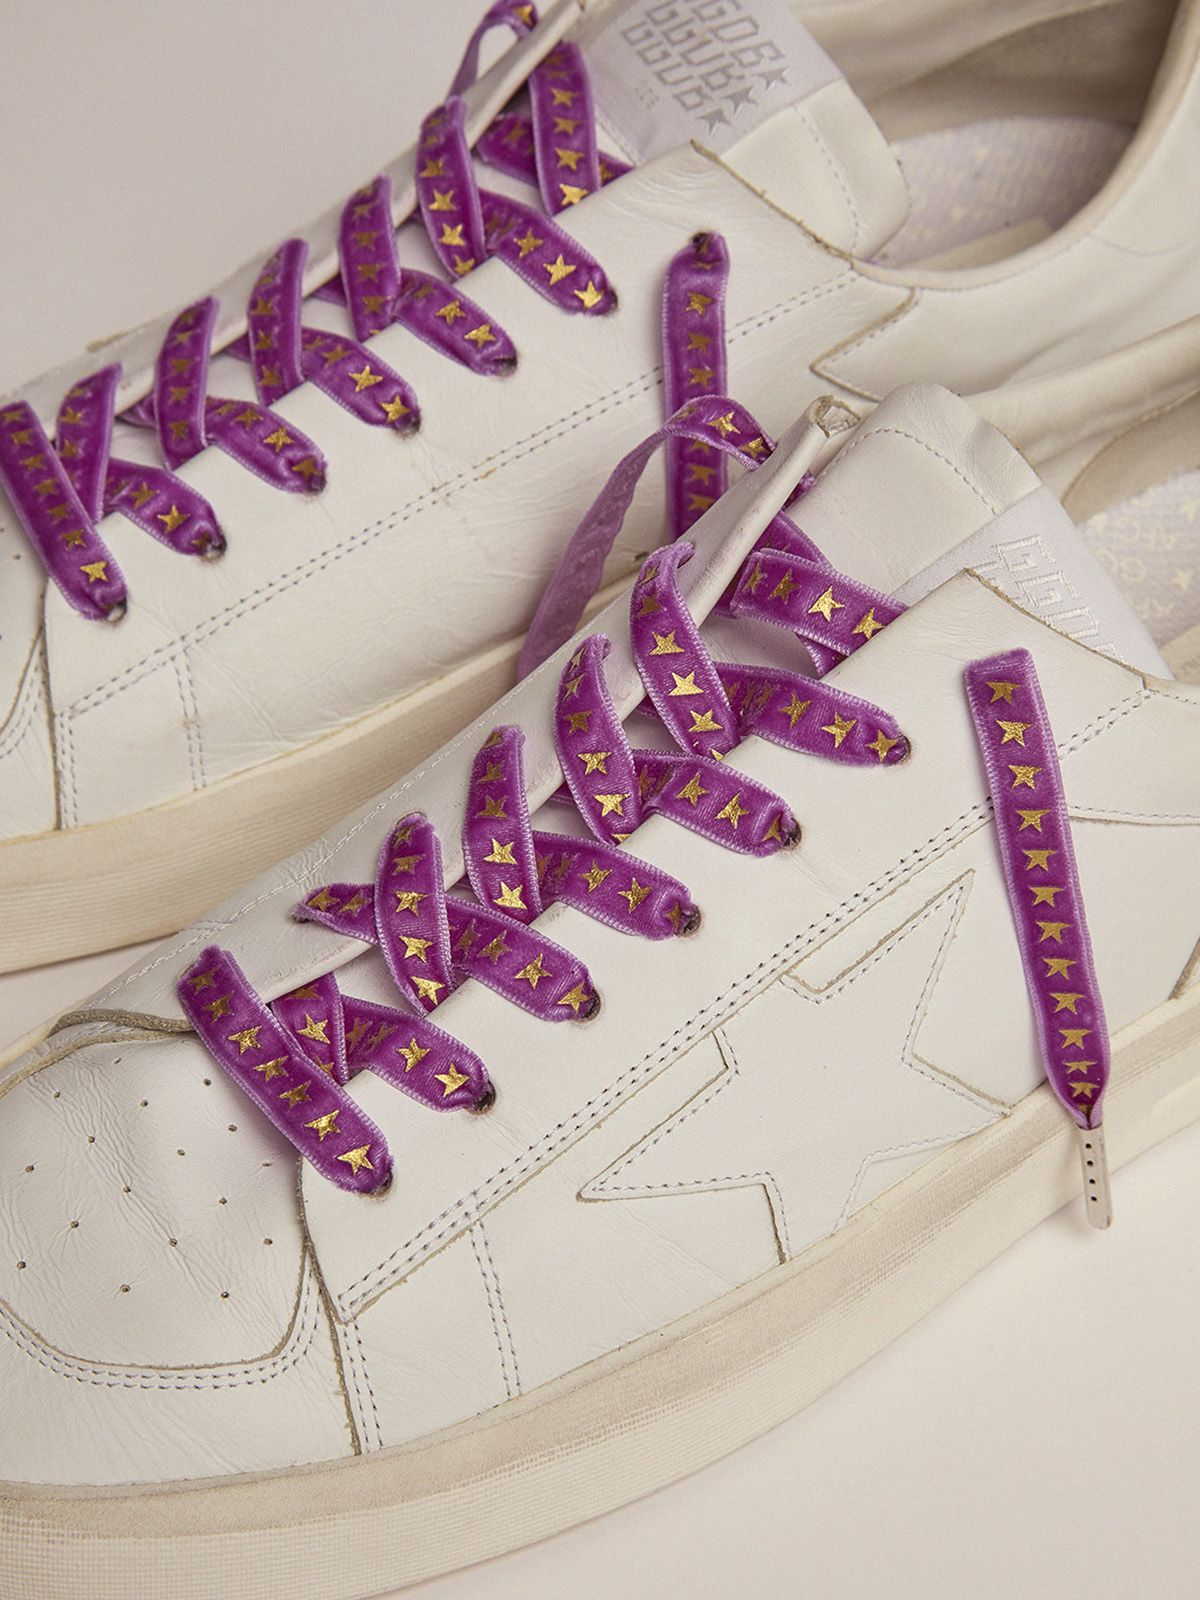 Golden Goose - Women's purple velvet laces with gold stars in